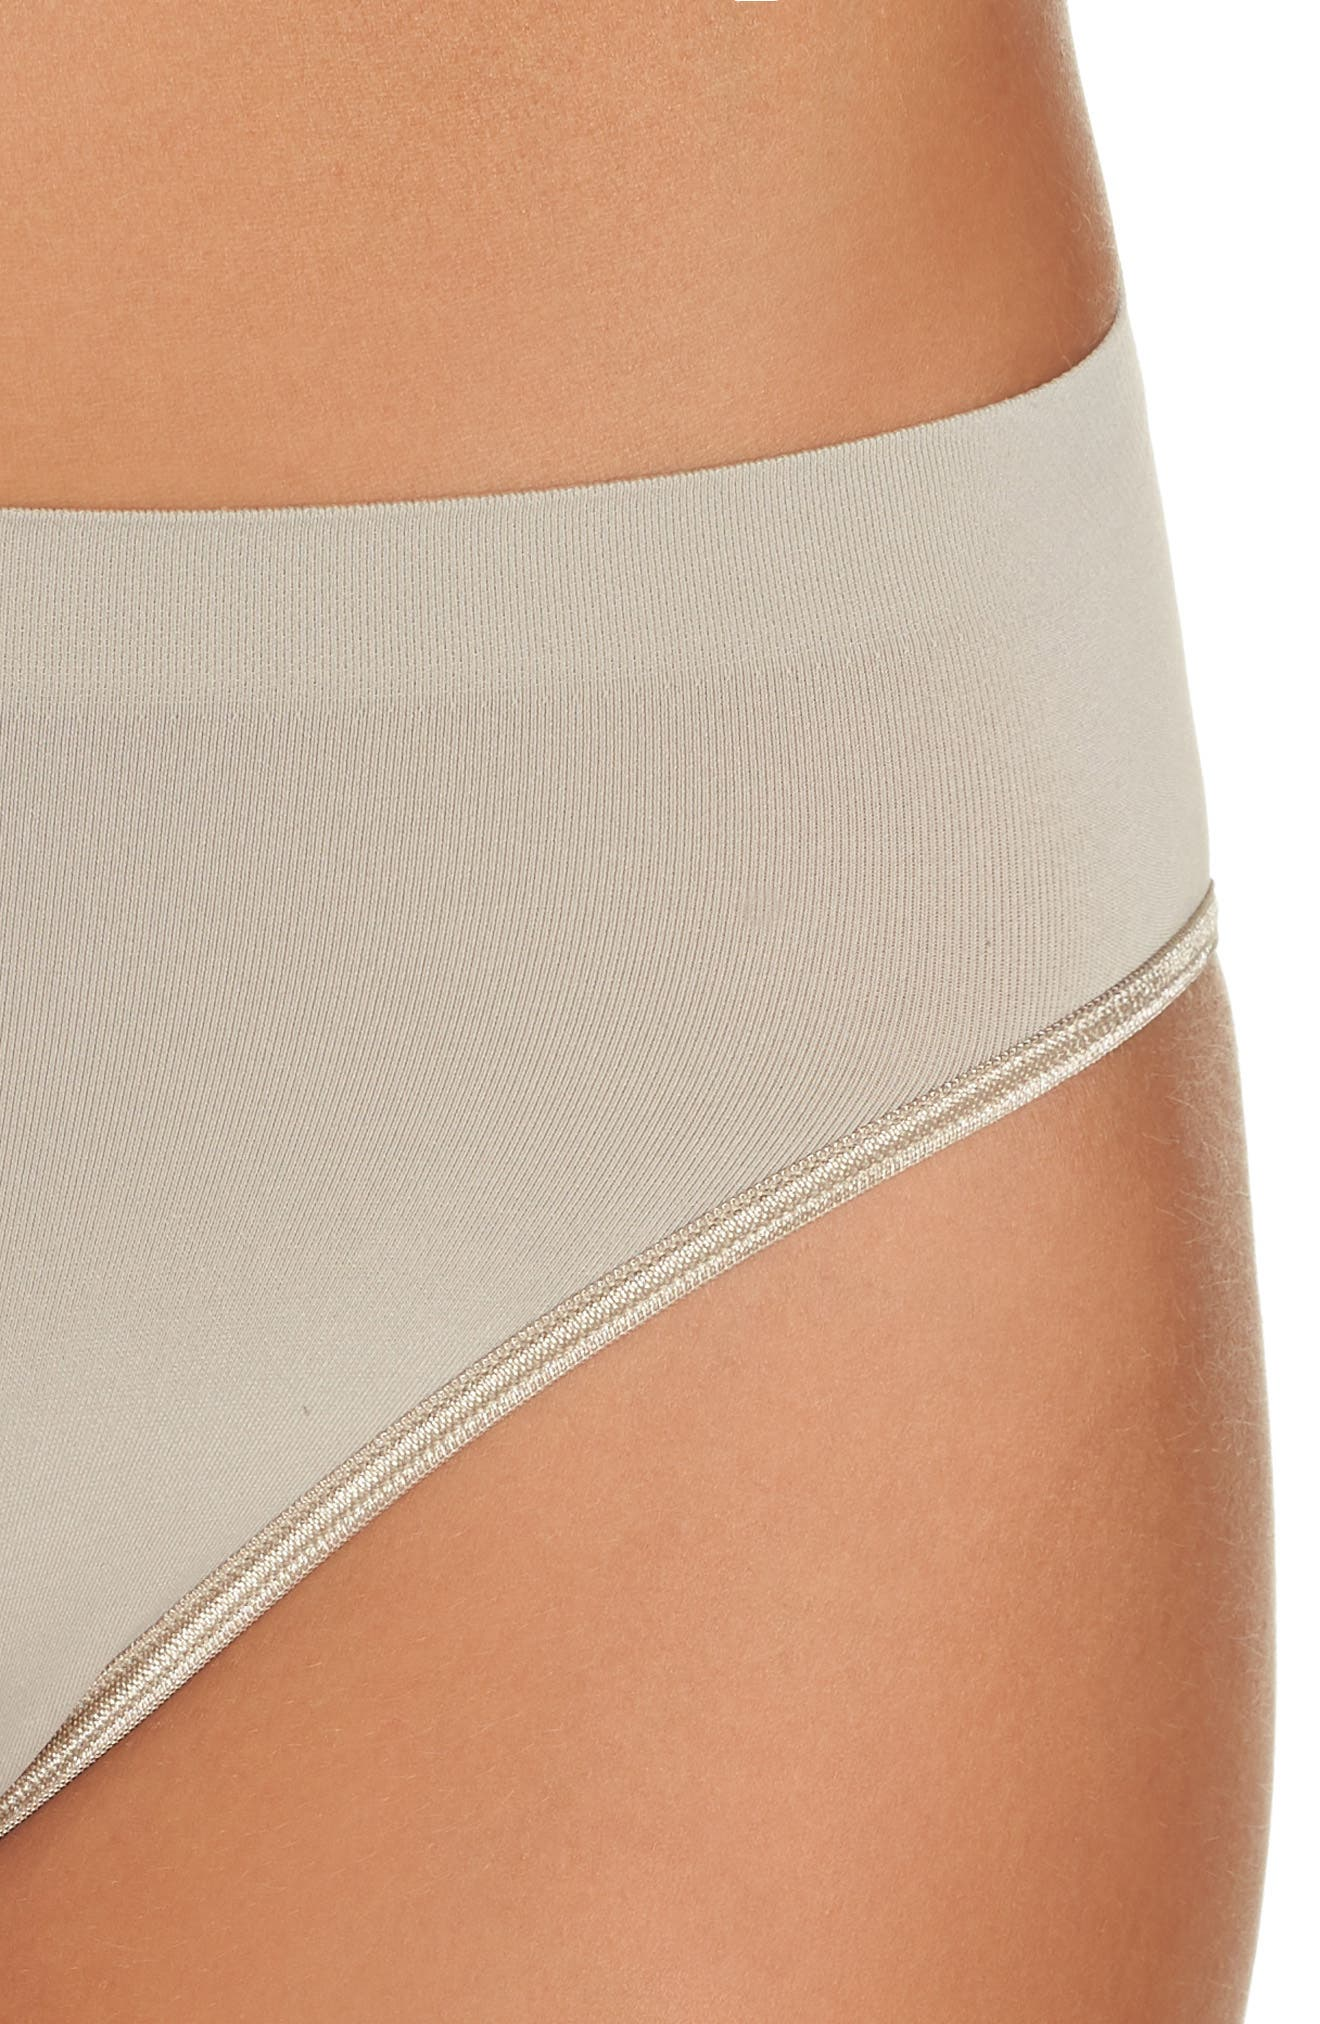 'Touch Feeling' High Cut Briefs,                             Alternate thumbnail 4, color,                             NATURAL STONE